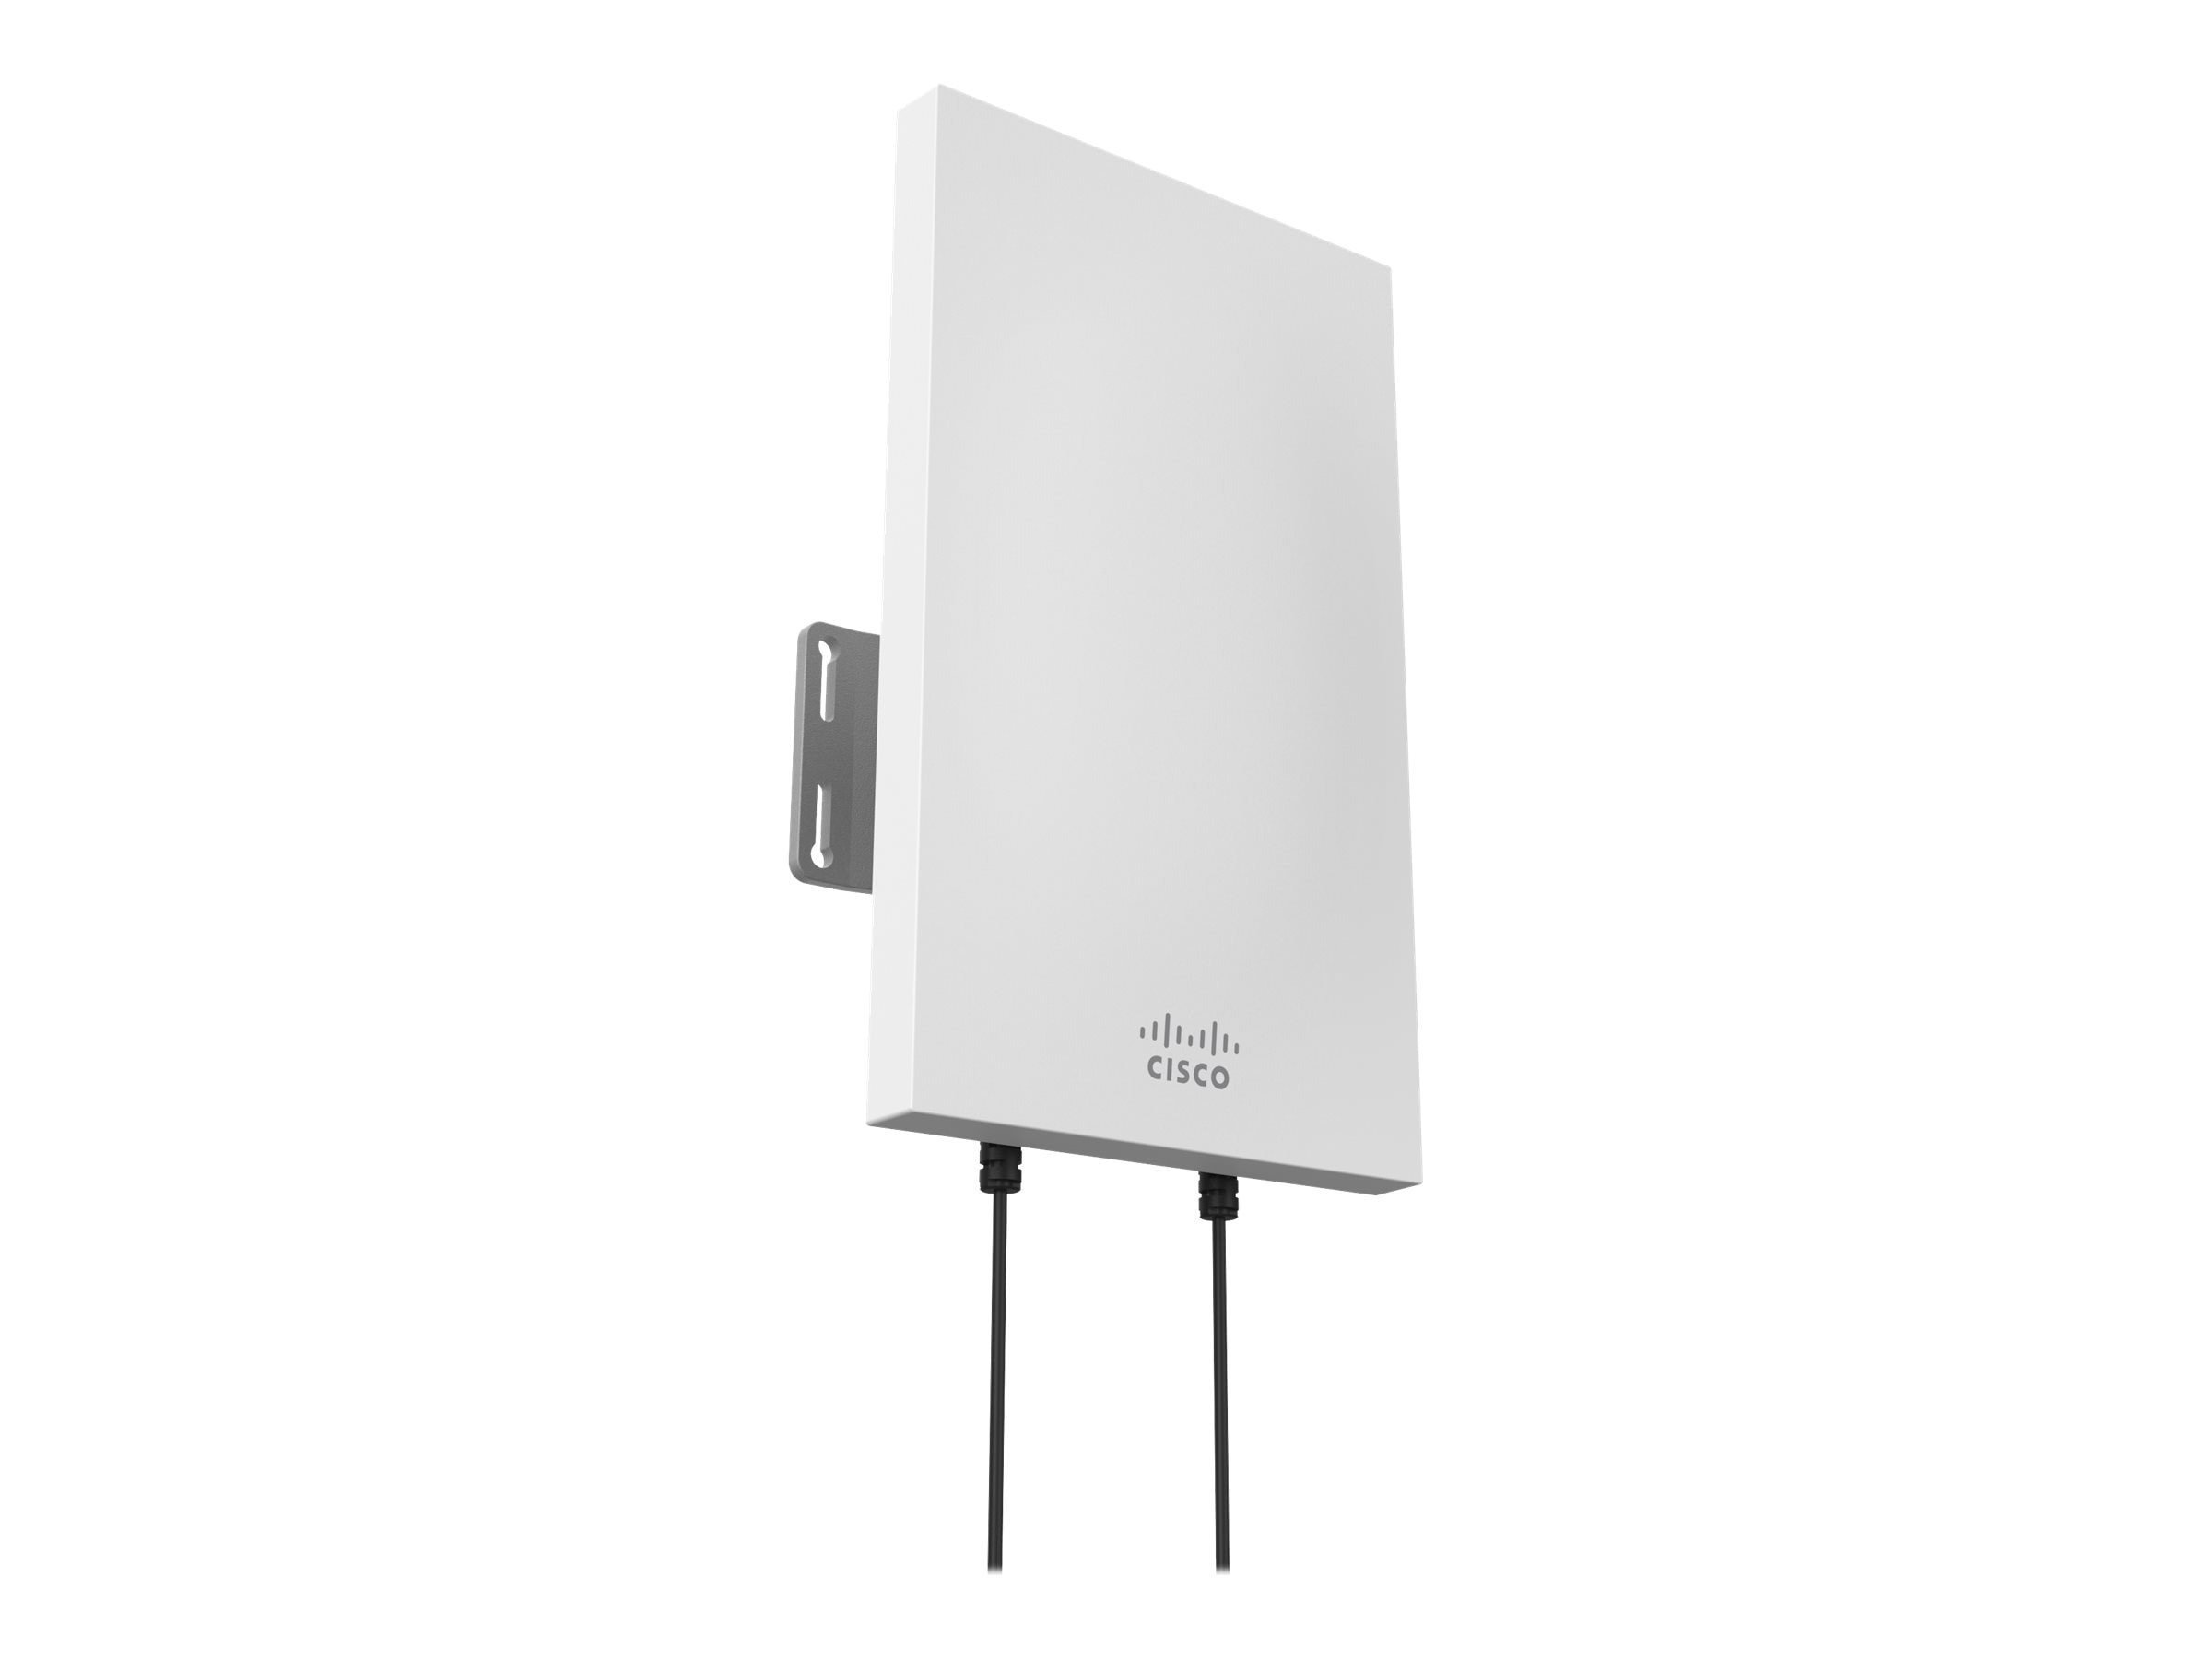 Cisco Meraki 2.4GHZ Sector Antenna